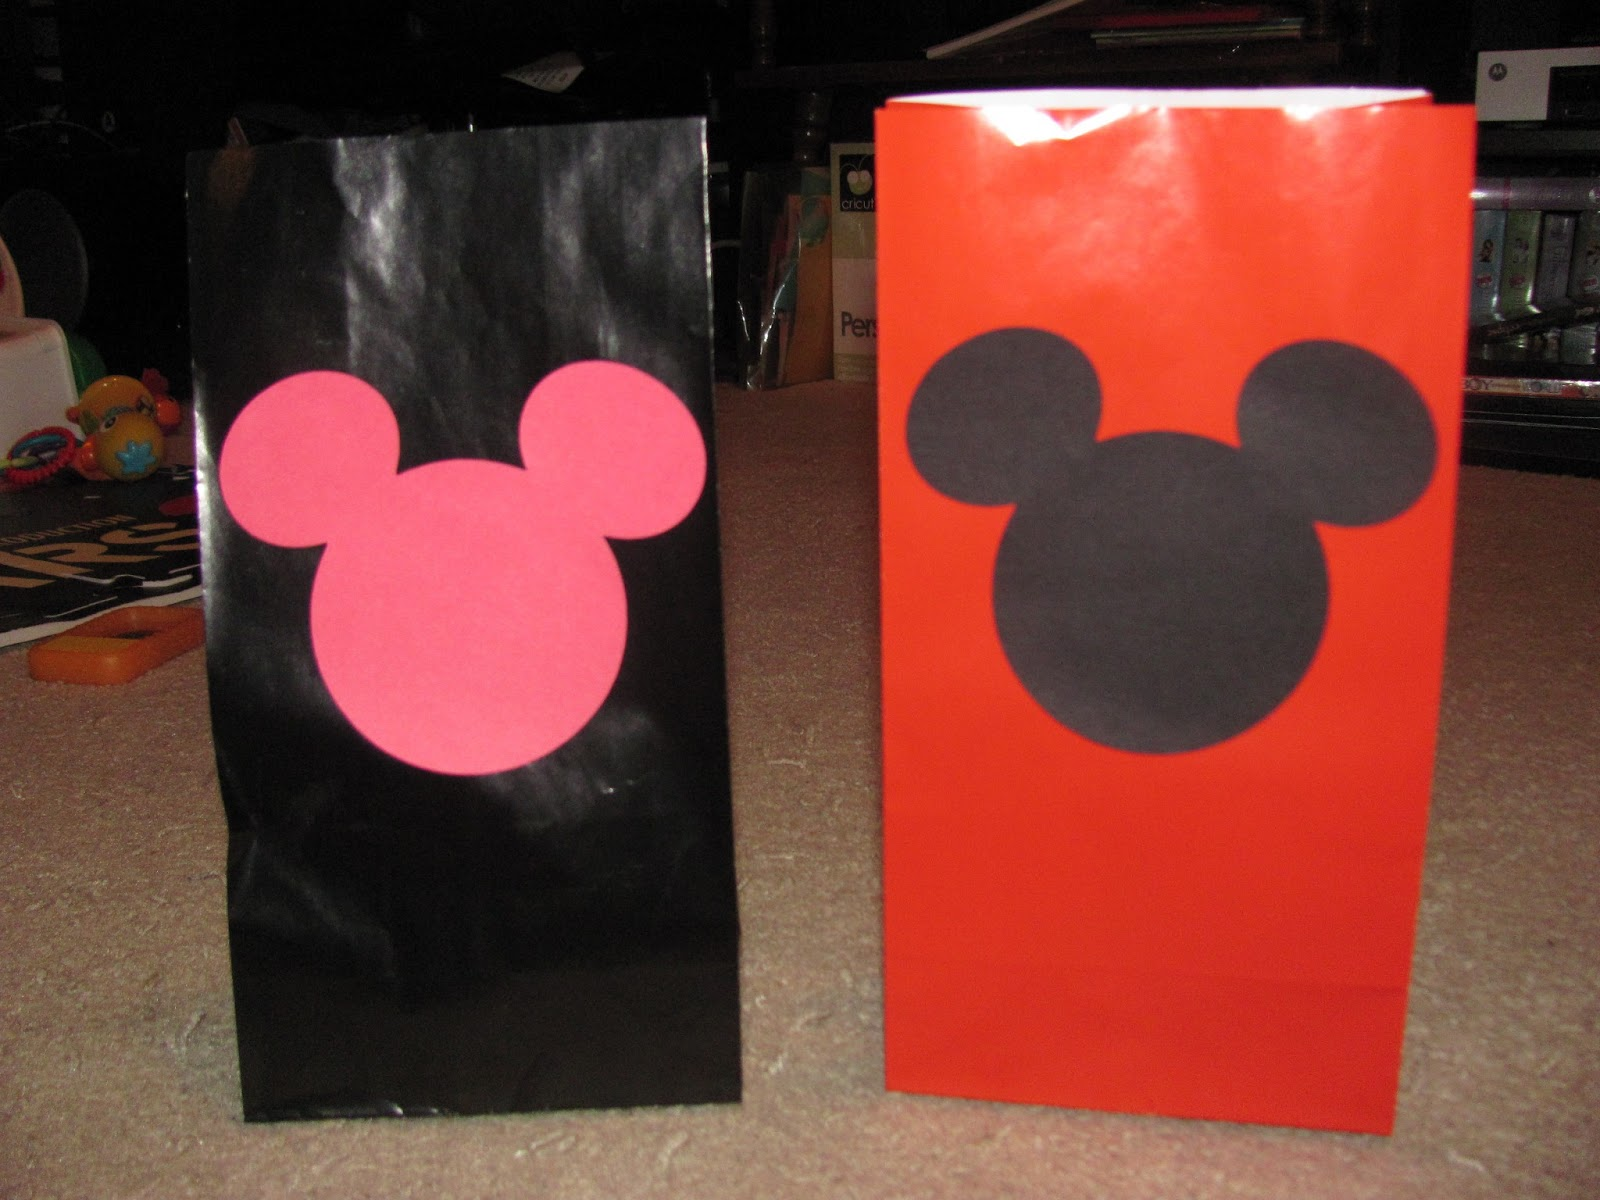 Mickey Mouse Birthday Party Goodie Bags I Bought Small Plain Red And Black Gift Then Used My Cricut Machine To Cut Out Pink Mickeys